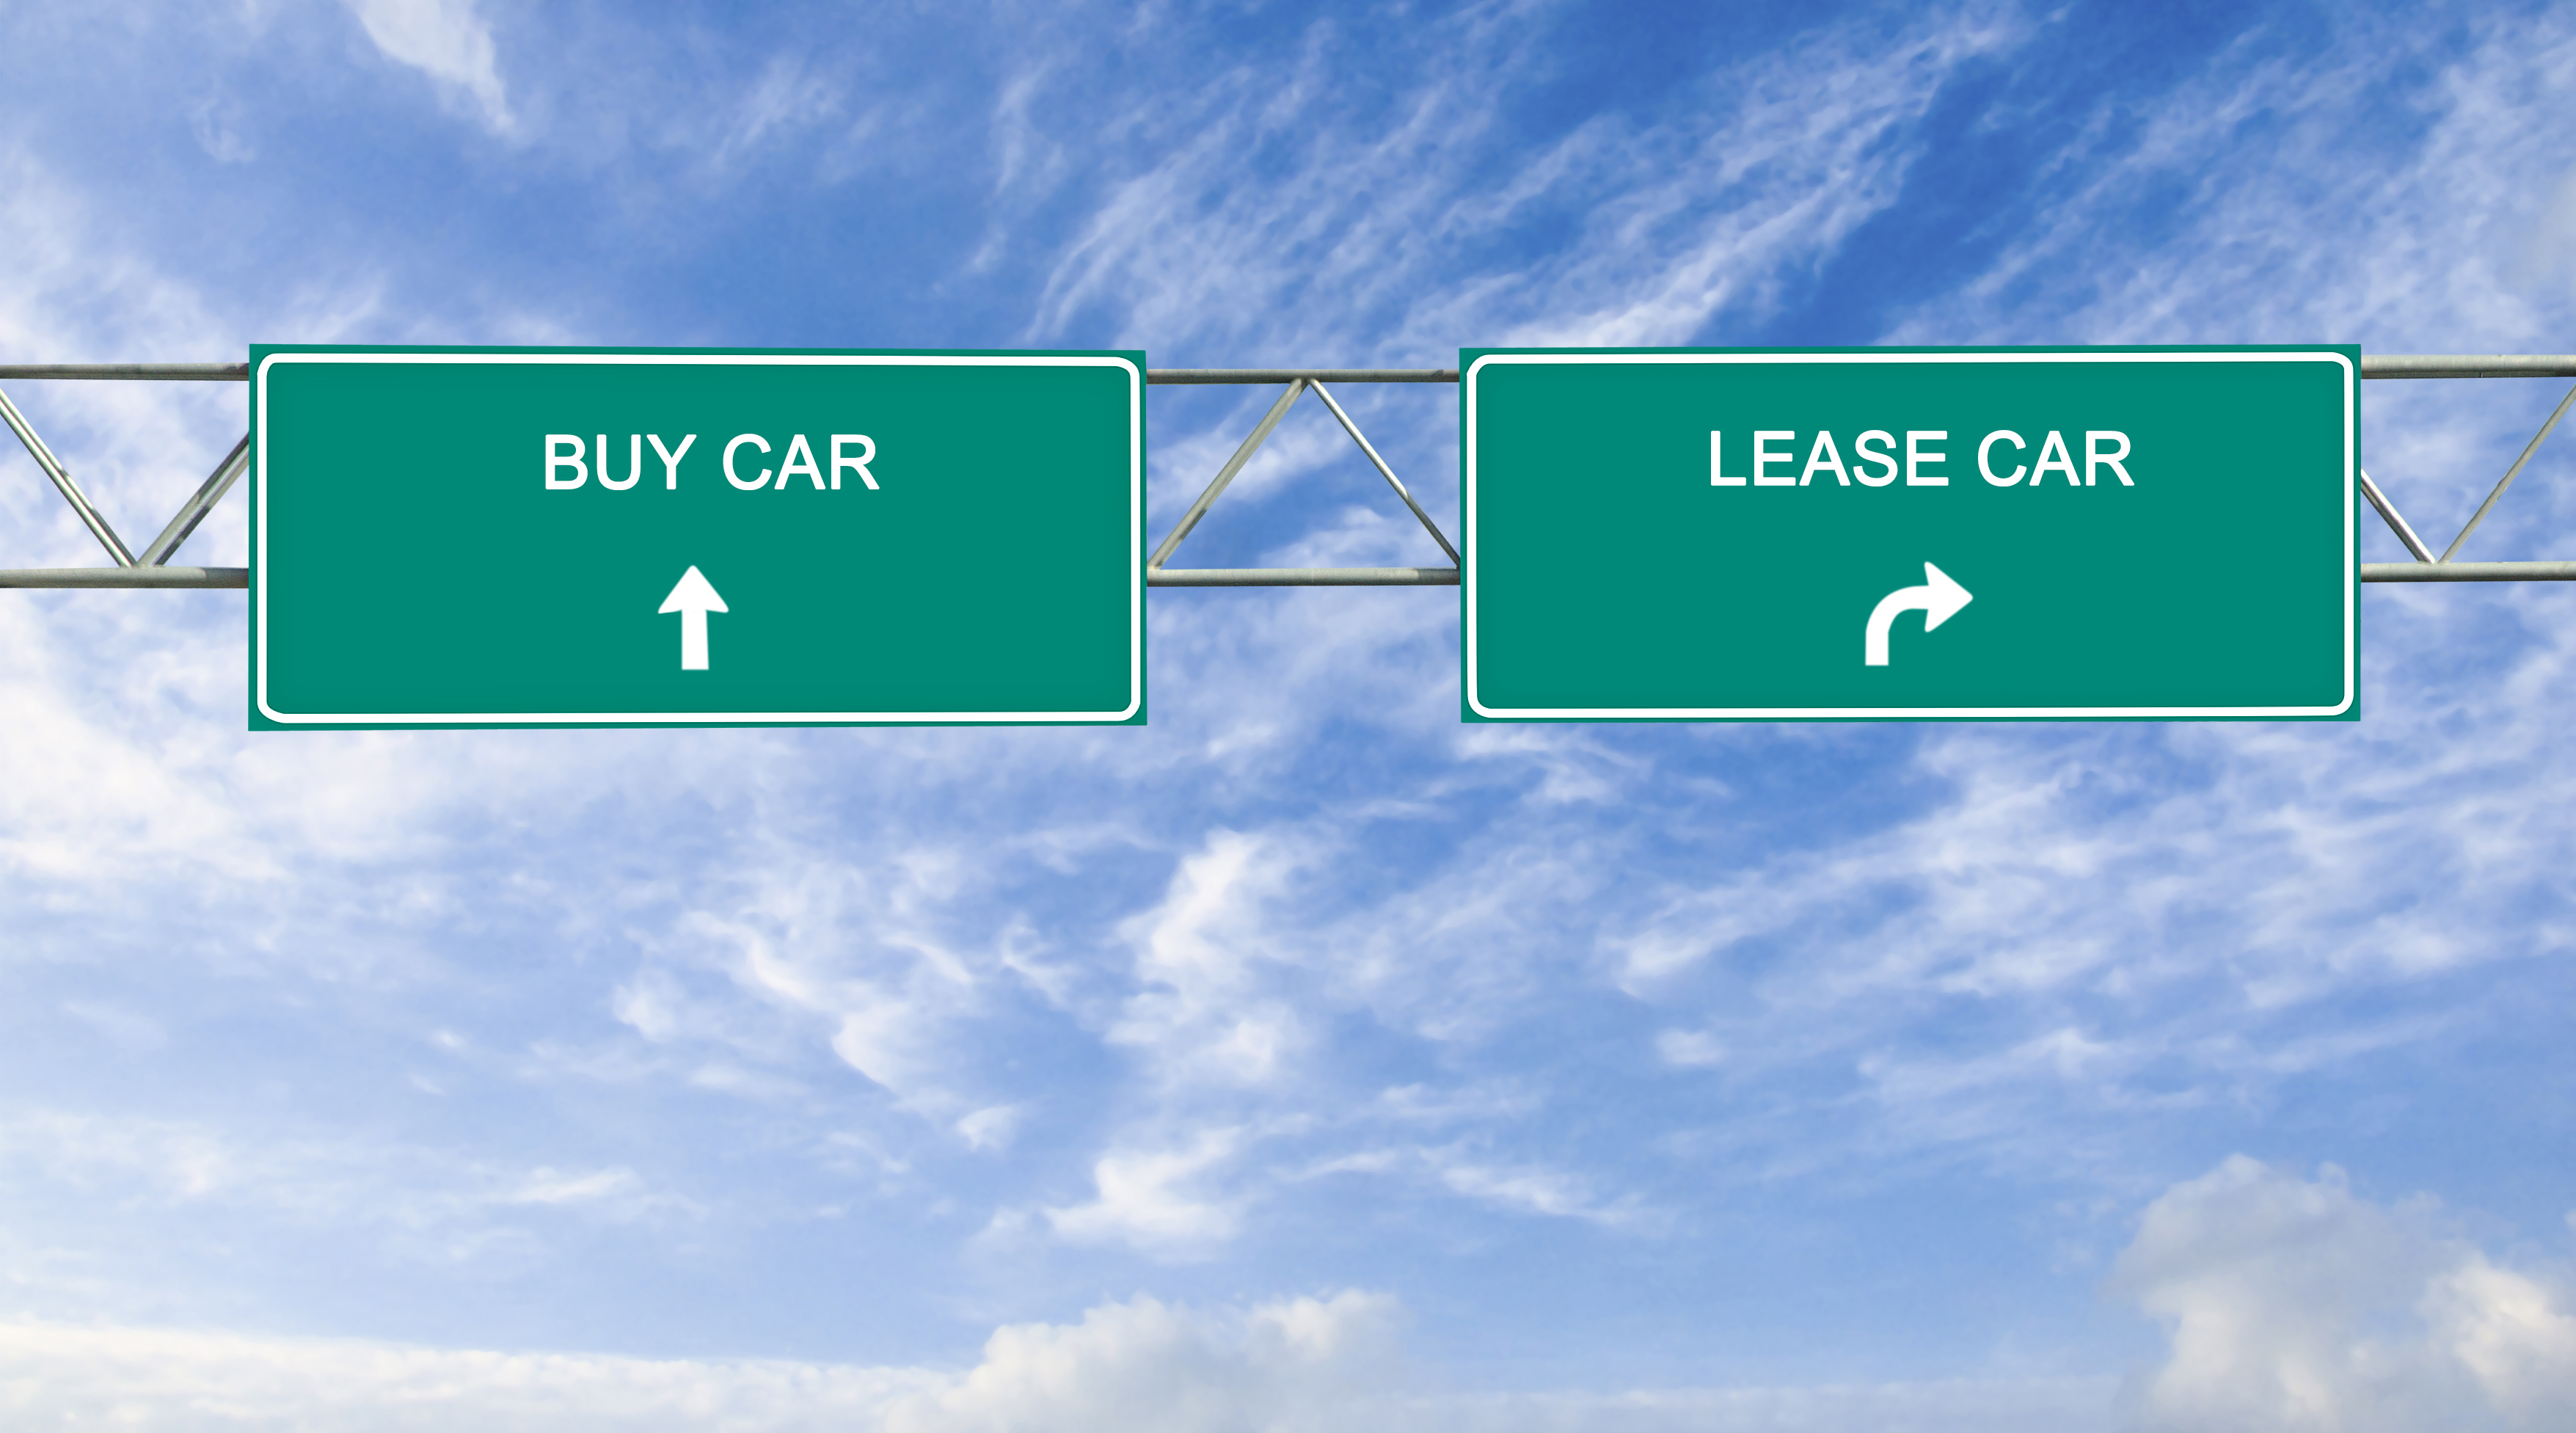 Buy or Lease a Car